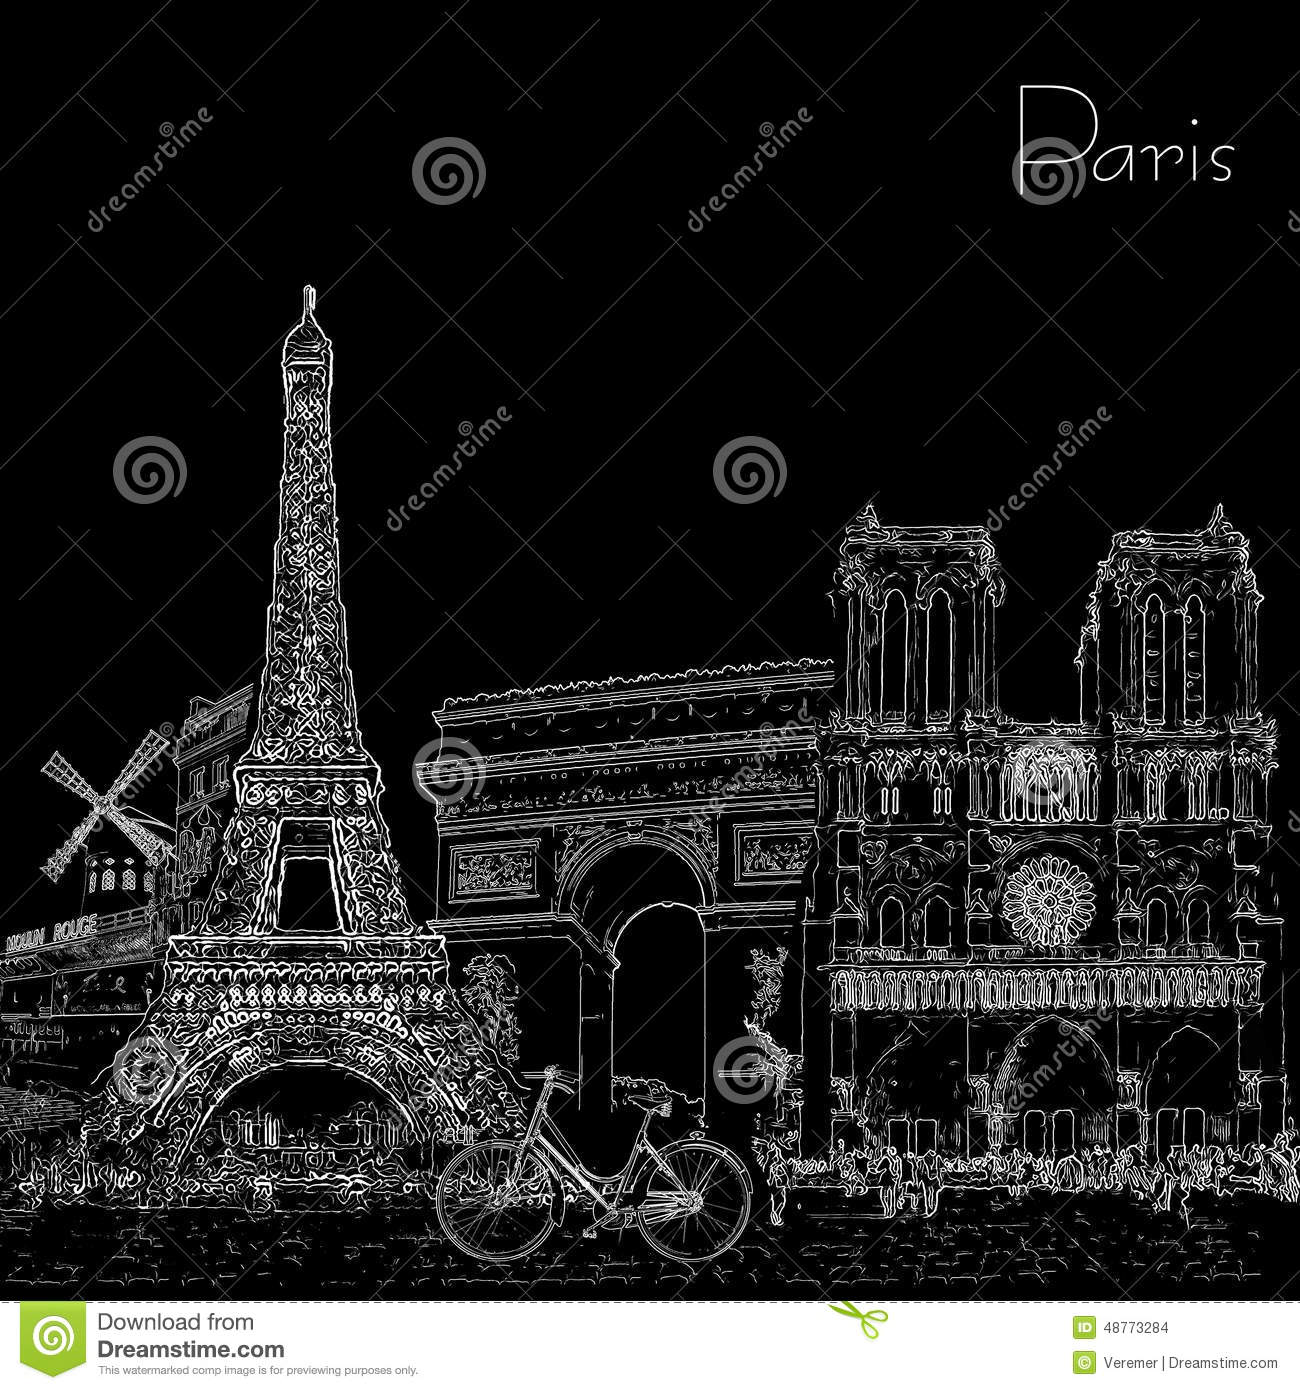 Sketch Style Poster With Paris Symbols And Landmarks Black And White Stock Illustration Illustration Of Love Attraction 48773284